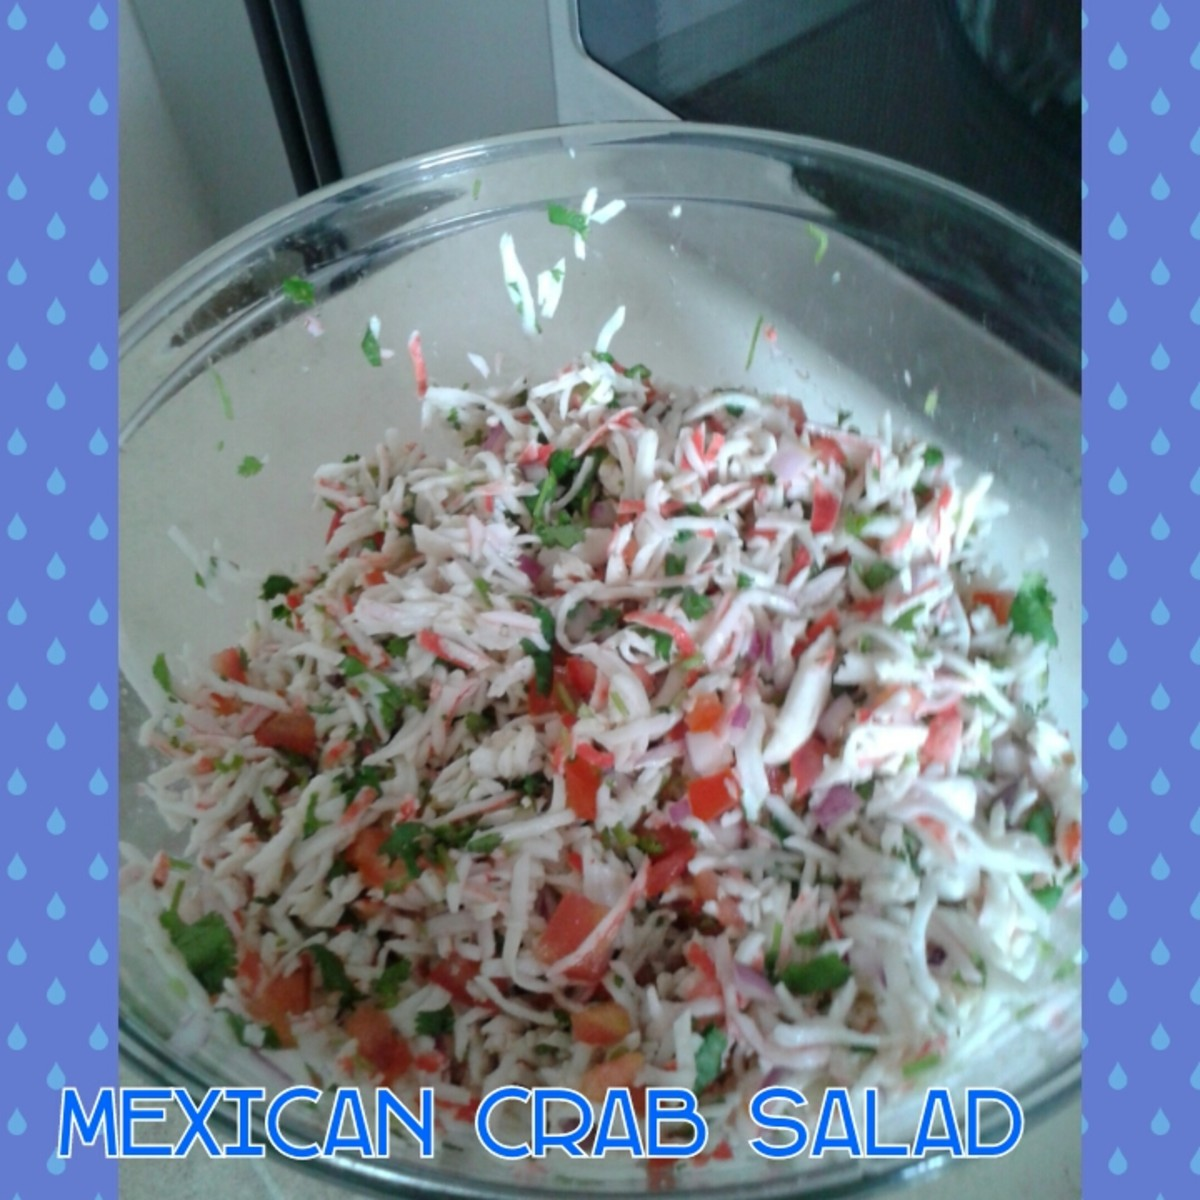 This is how i do the Mexican imitation crab salad.